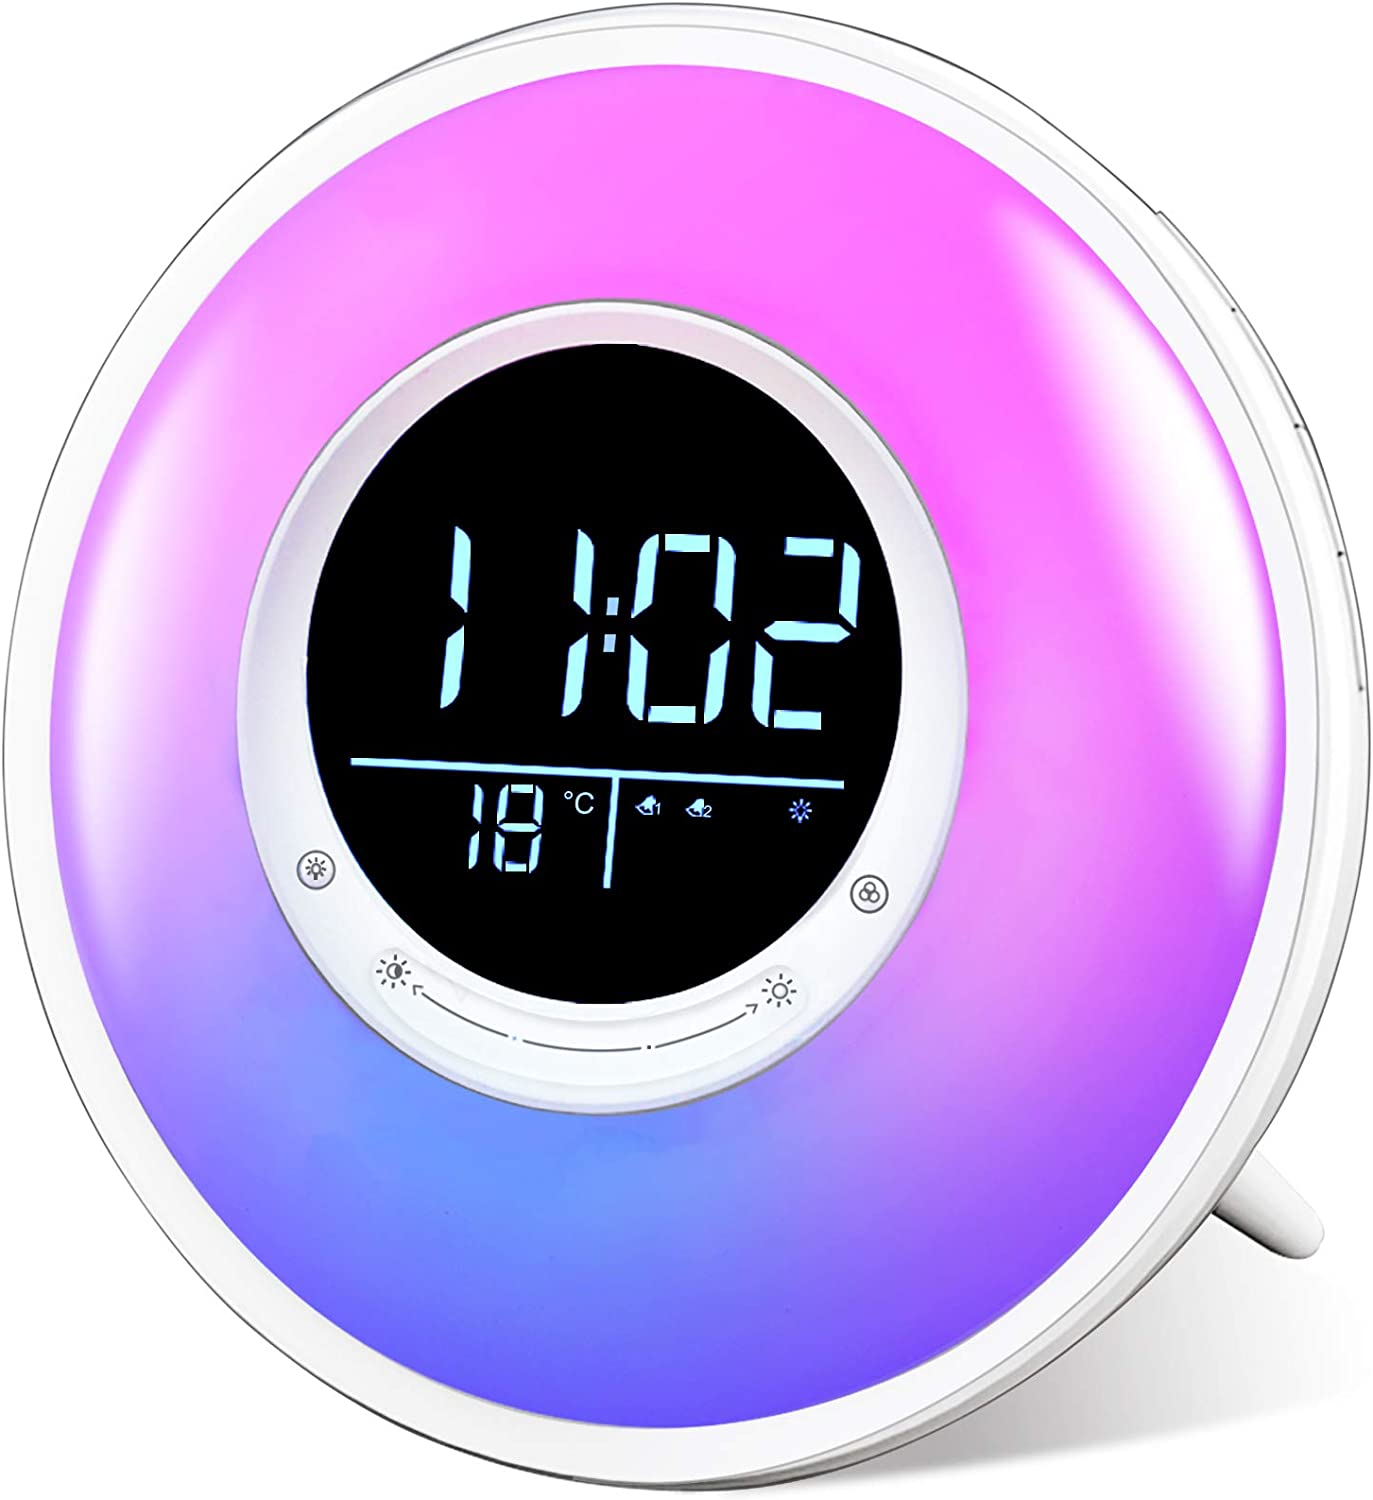 Sunrise Wake Up Light Alarm Clock, FiveHome White Noise Sound Machine with FM Radio, 11 Colors Night Light, 18 Natural Sounds, Sleep Timer, Dual Alarm, Snooze, Temperature Display